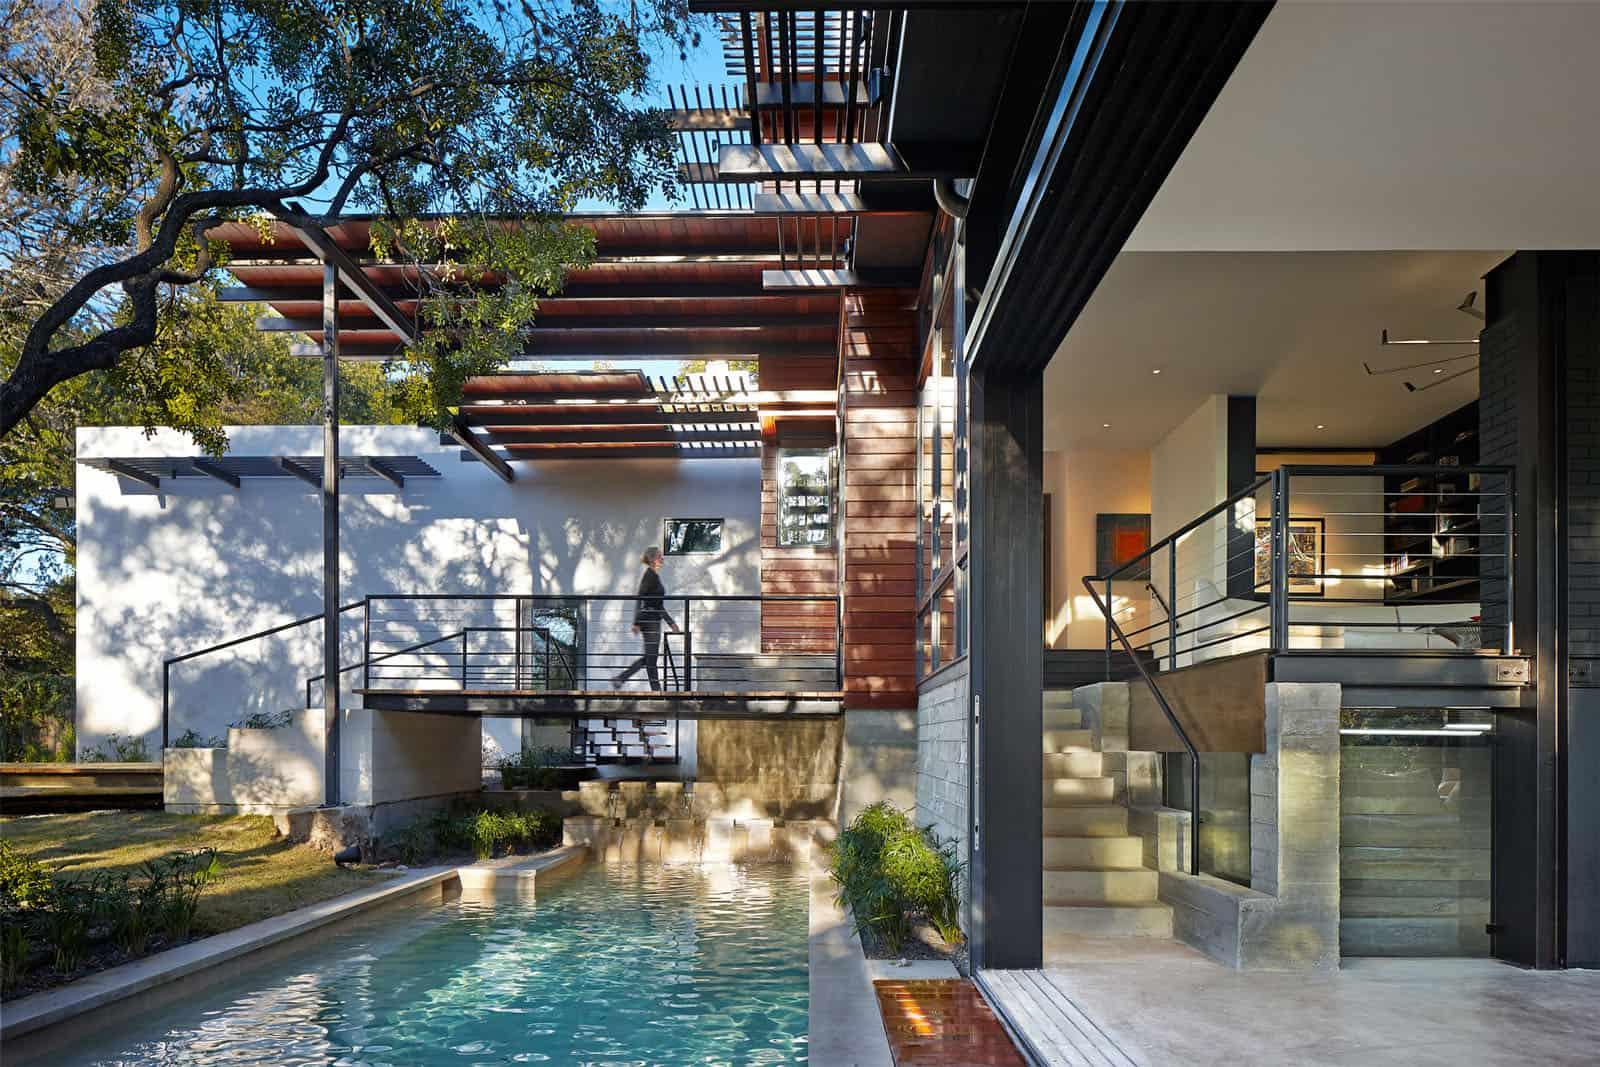 Rancher Morphed Into Sustainable 2 Storey House With Bridged Pool